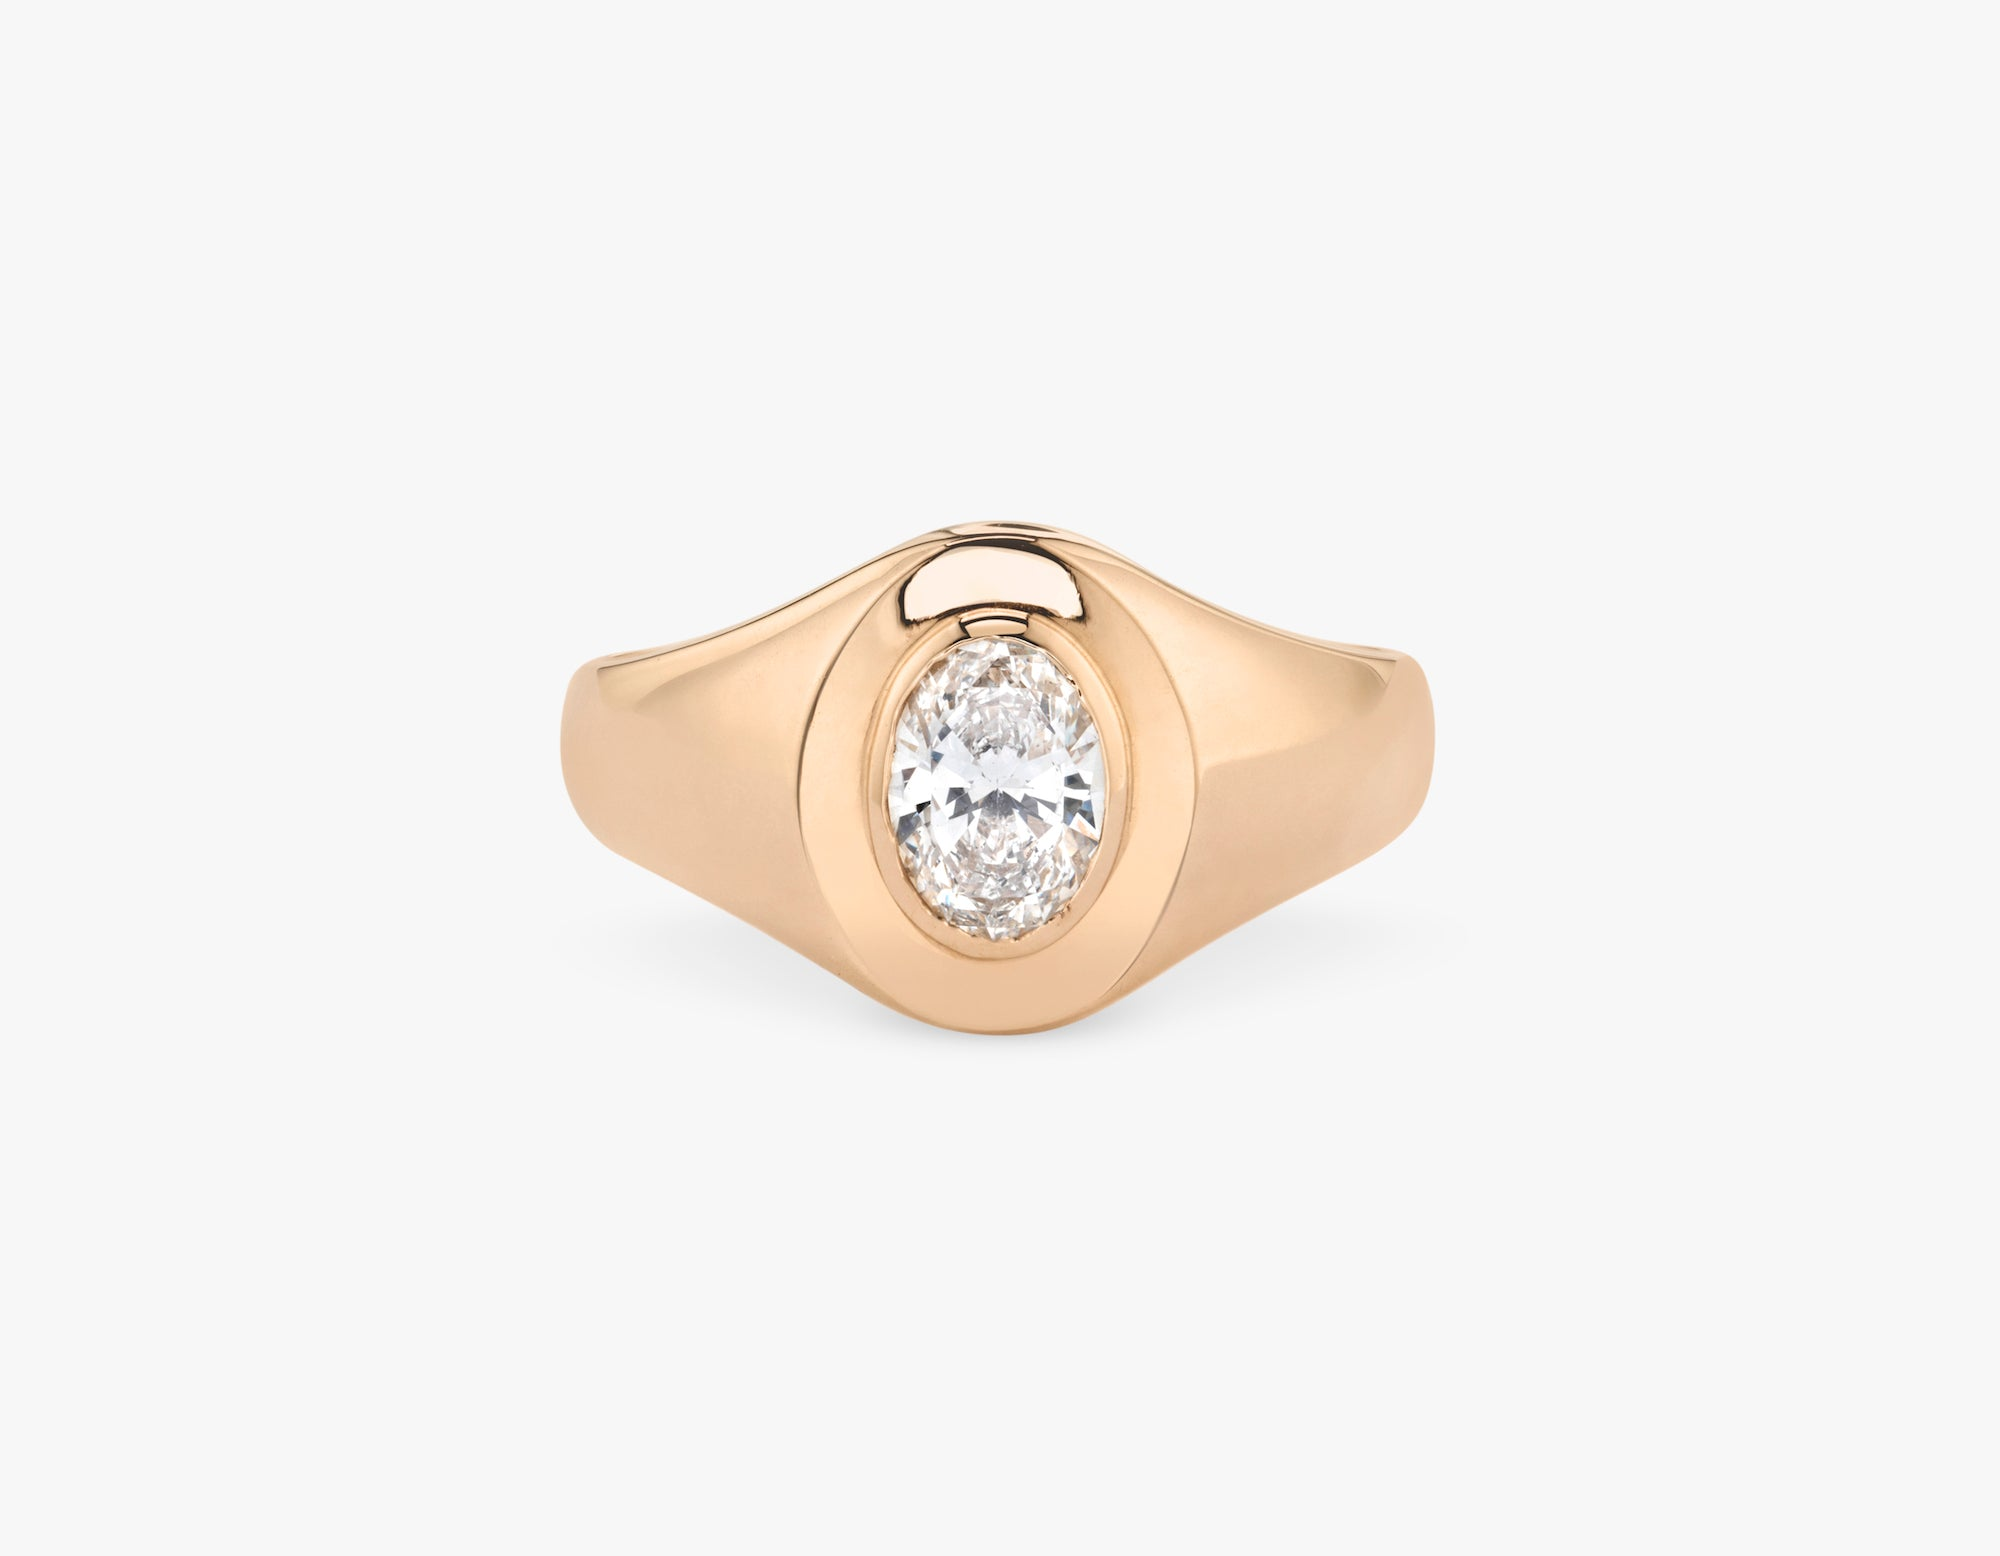 Vrai 14k solid gold classic simple Oval Diamond Signet Ring, 14K Rose Gold